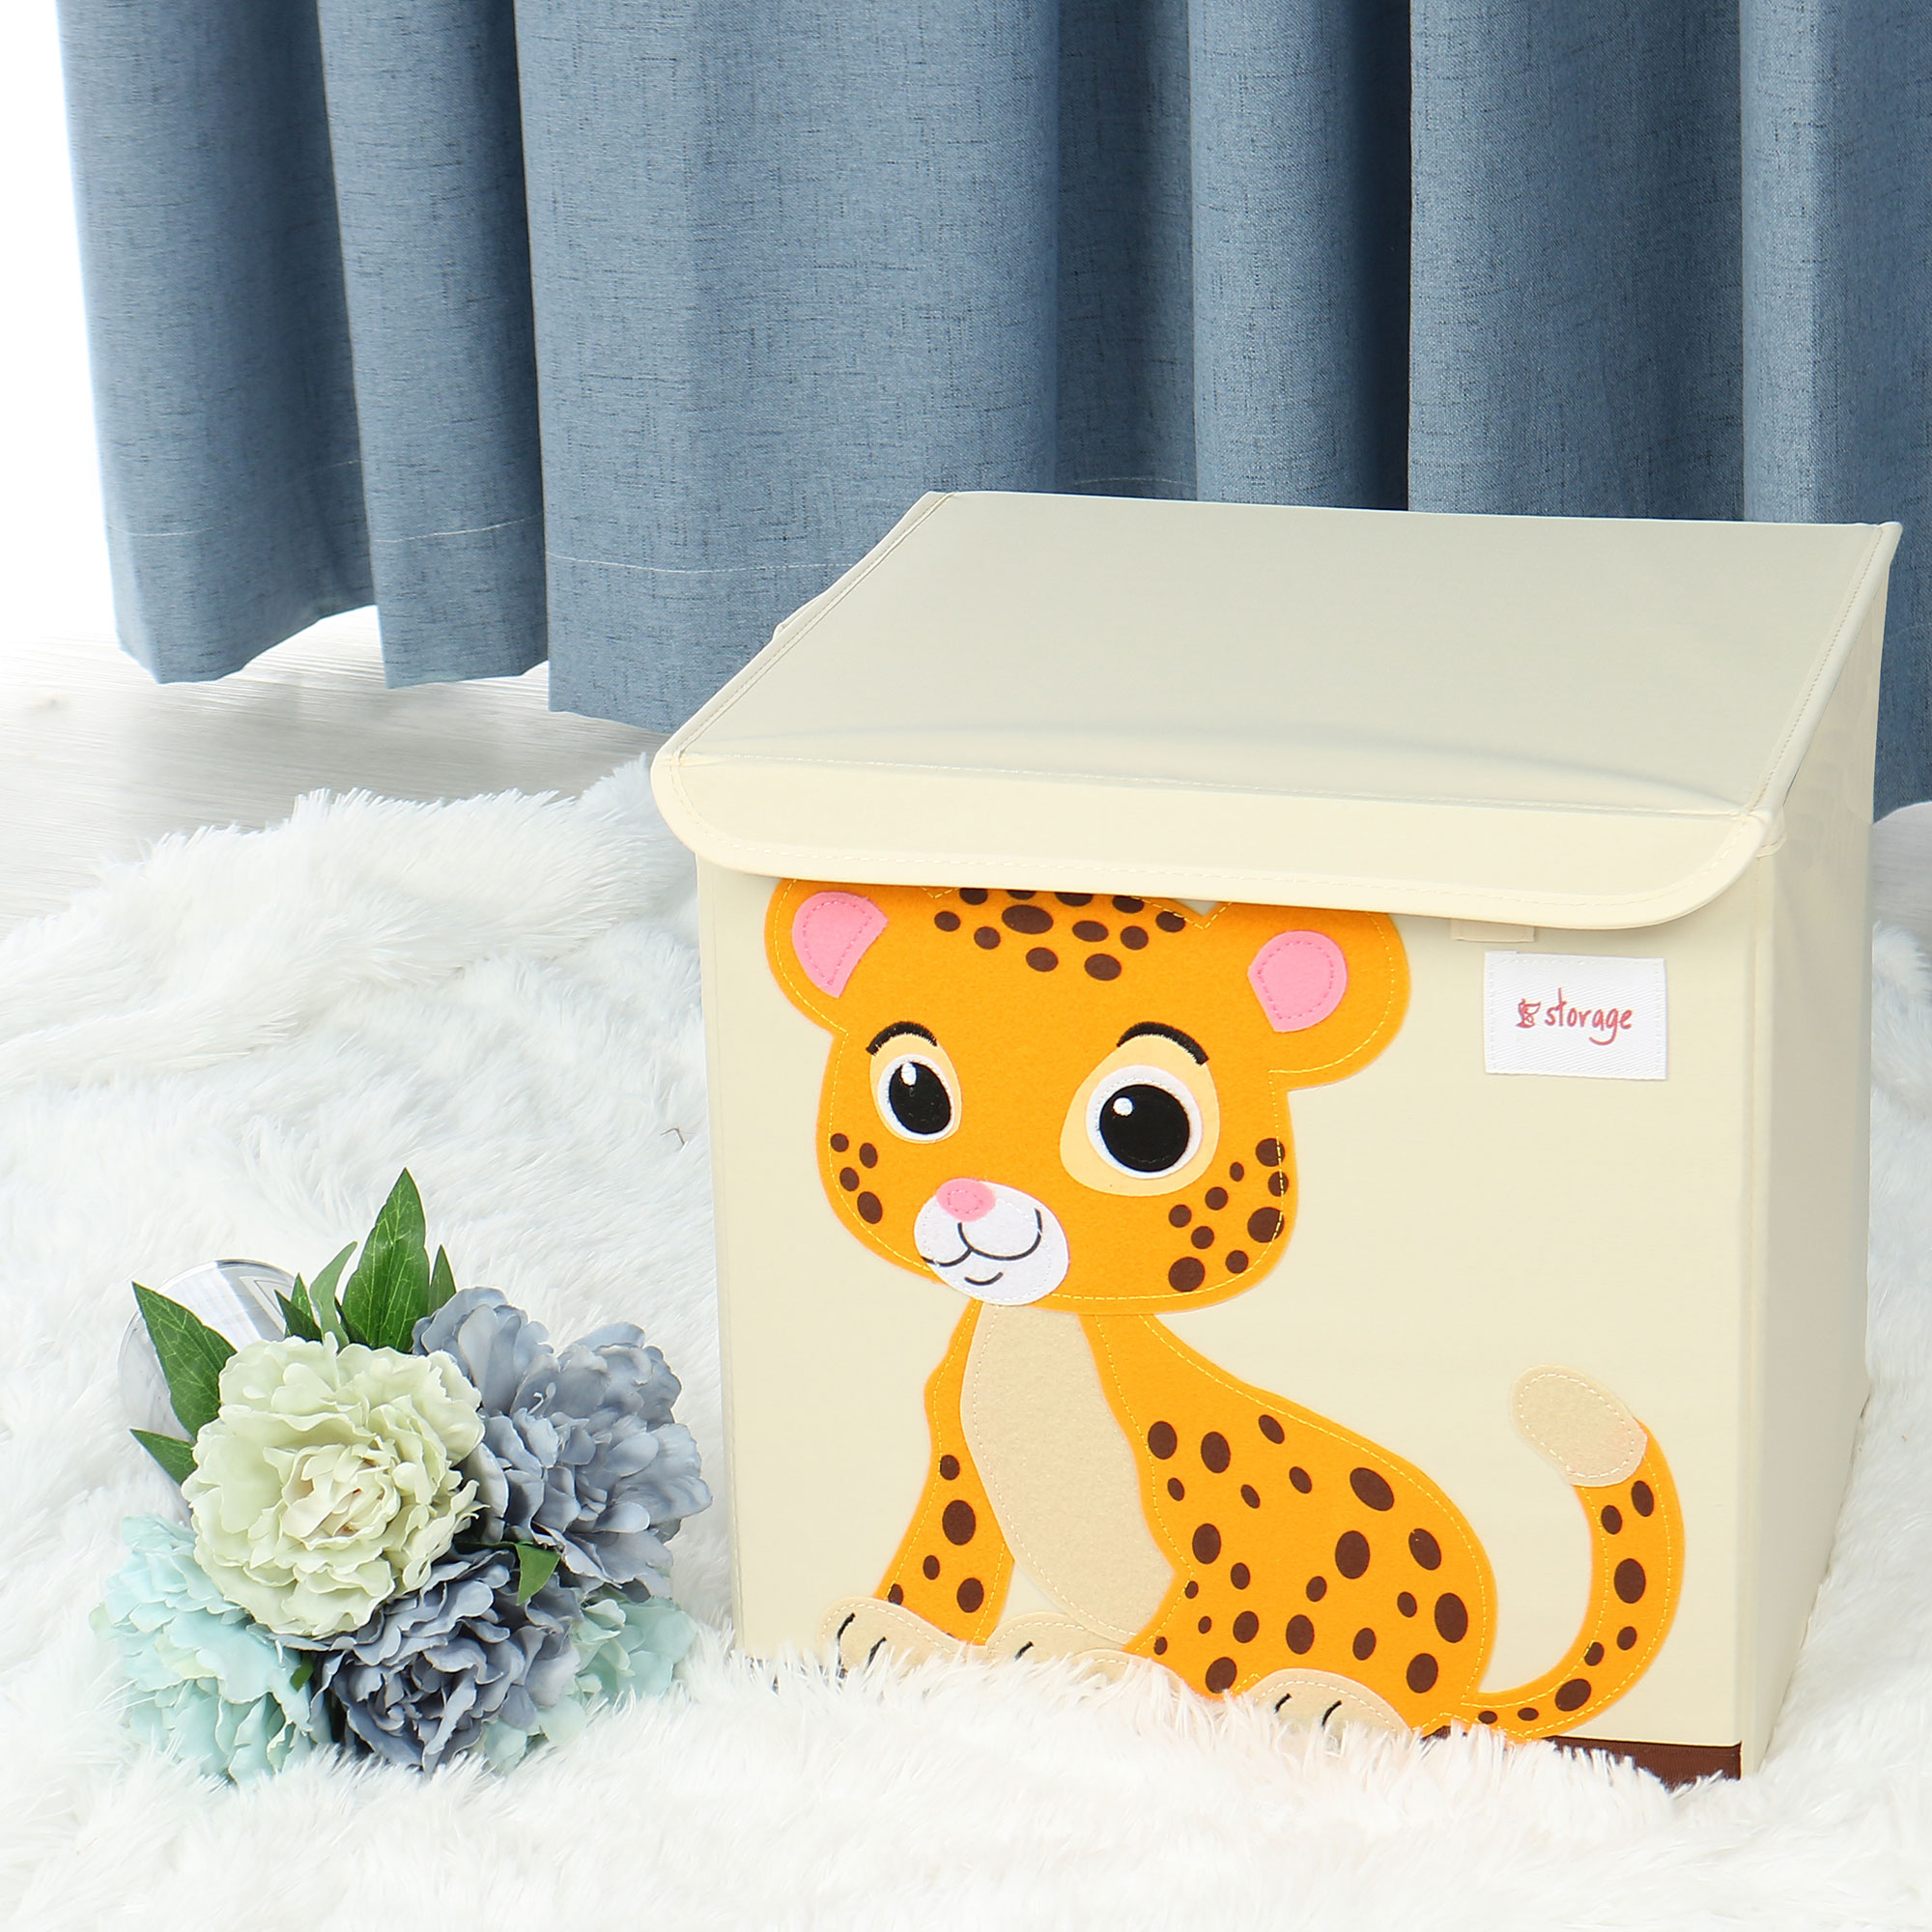 Foldable Fabric Cartoon Storage Bins Cubes Basket Waterproof Containers